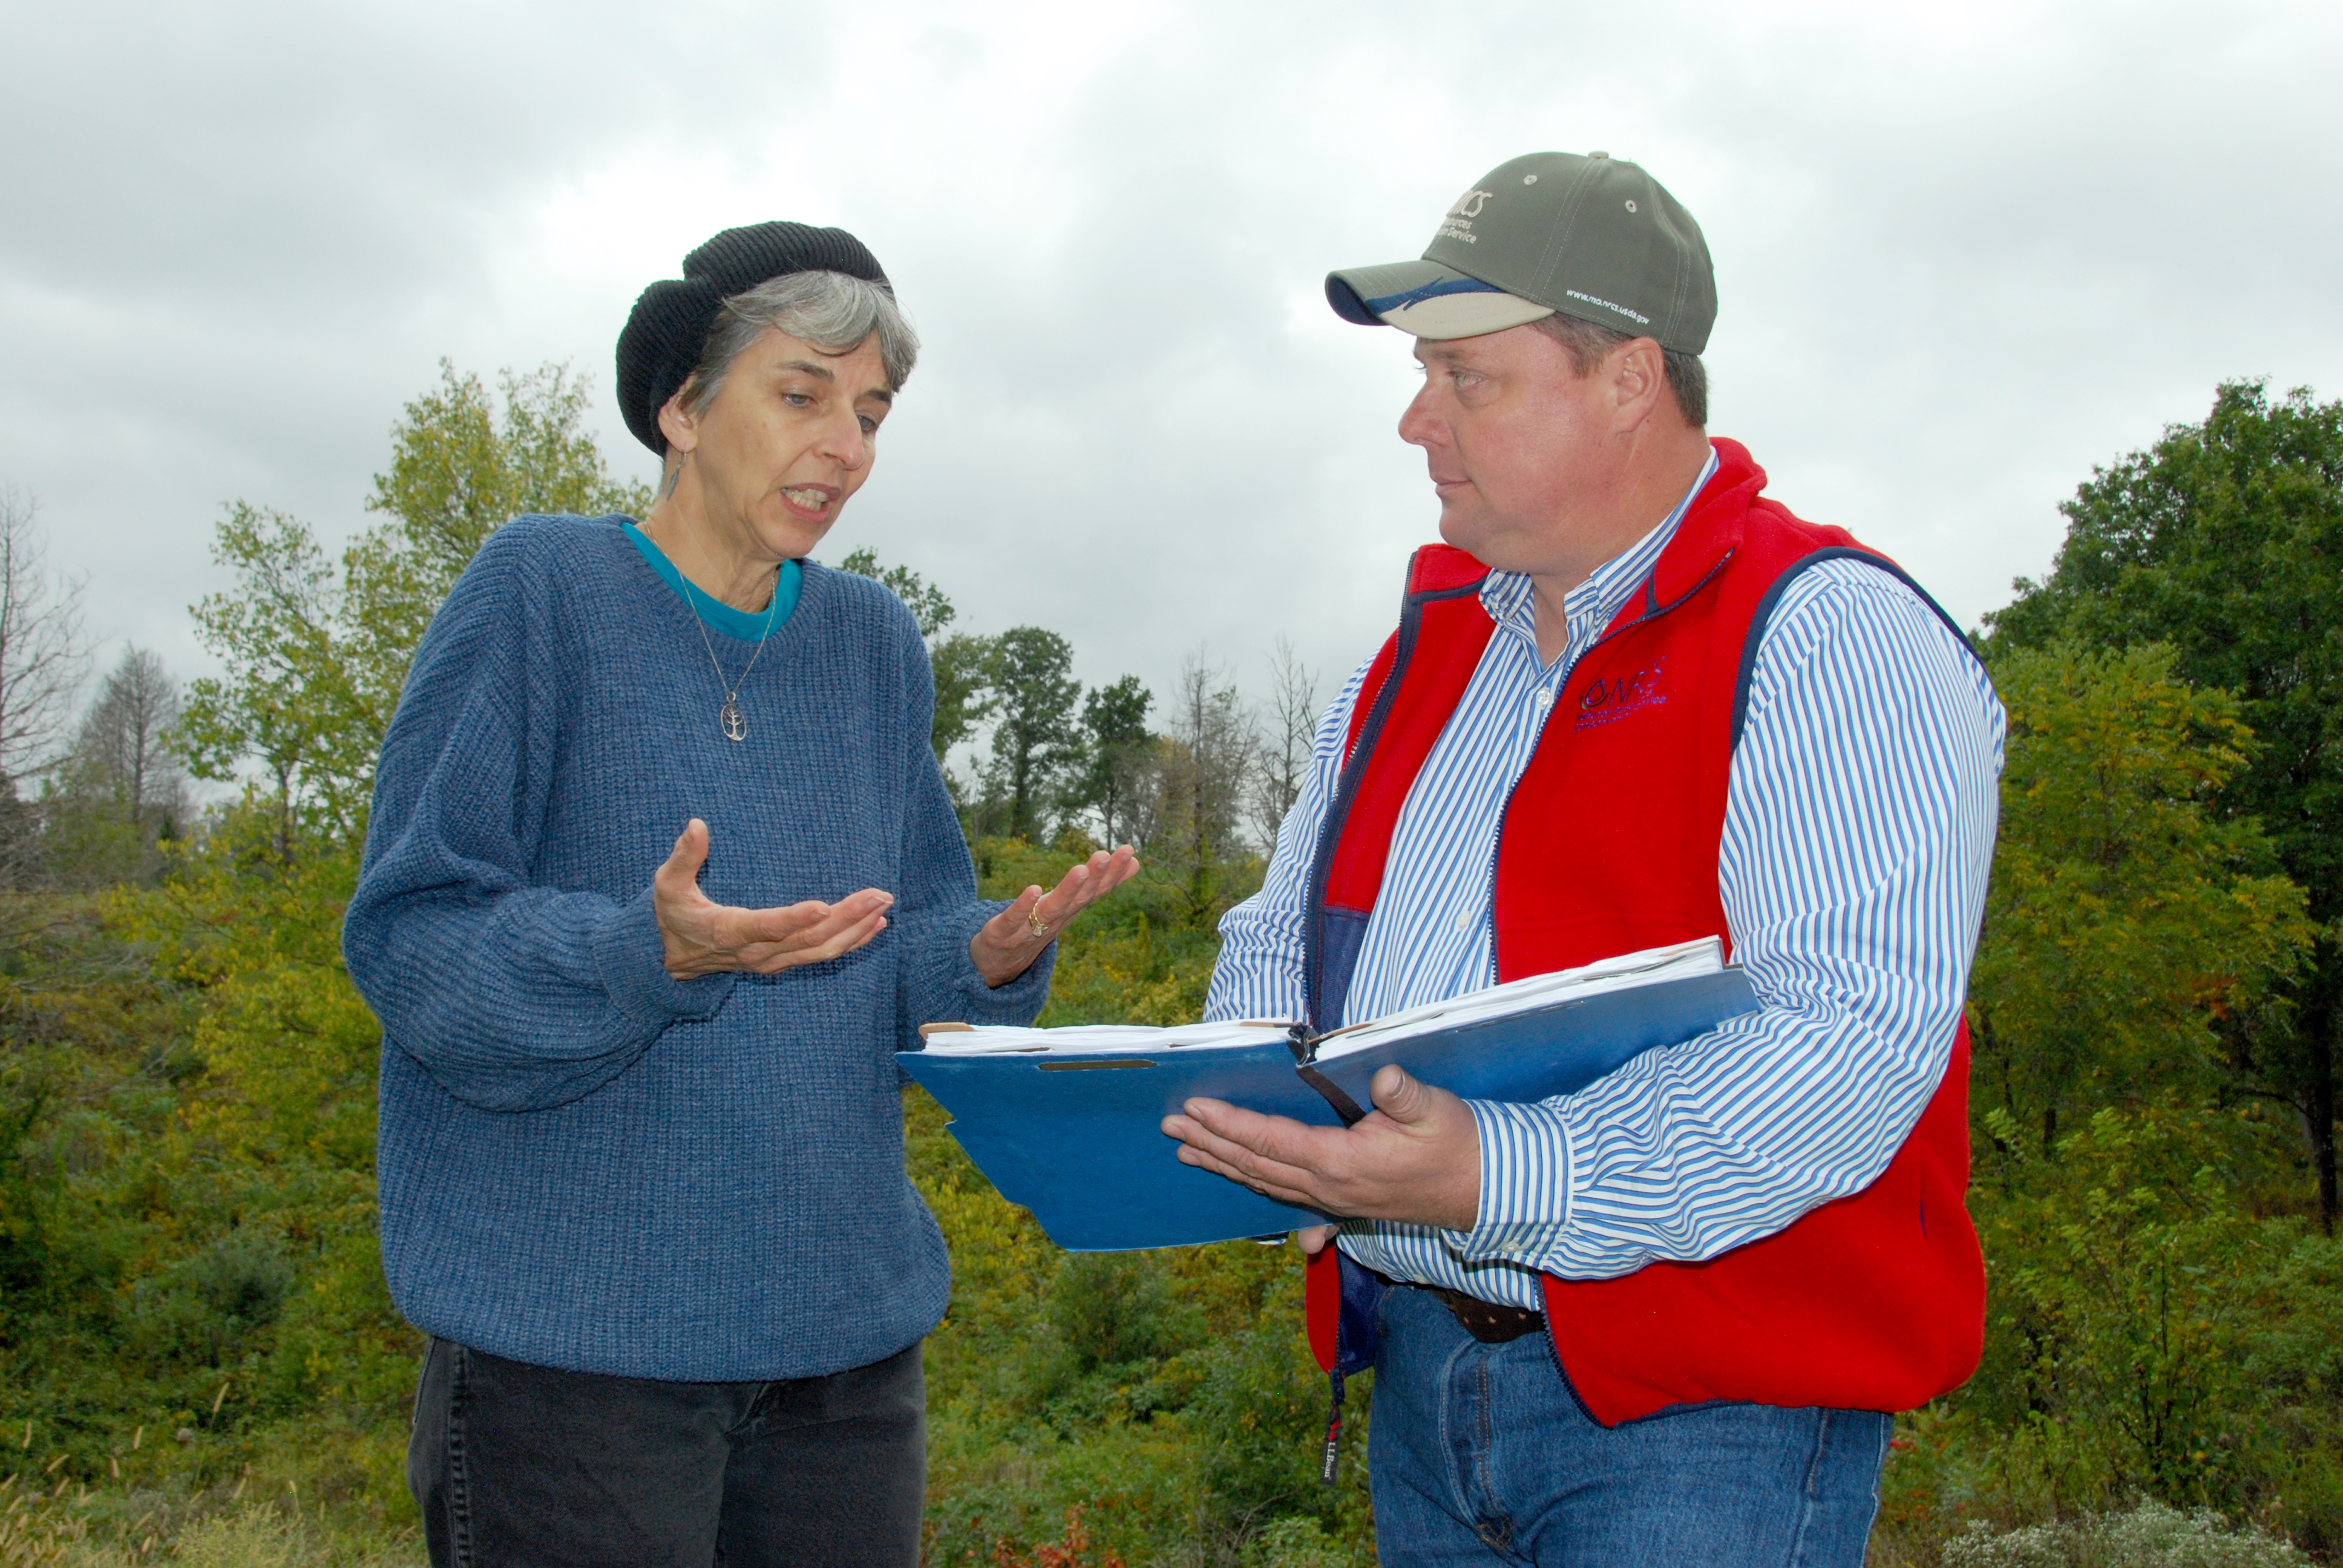 Theresa Lackey and District Conservationist Tony Hoover look over Lackey's Conservation Plan.